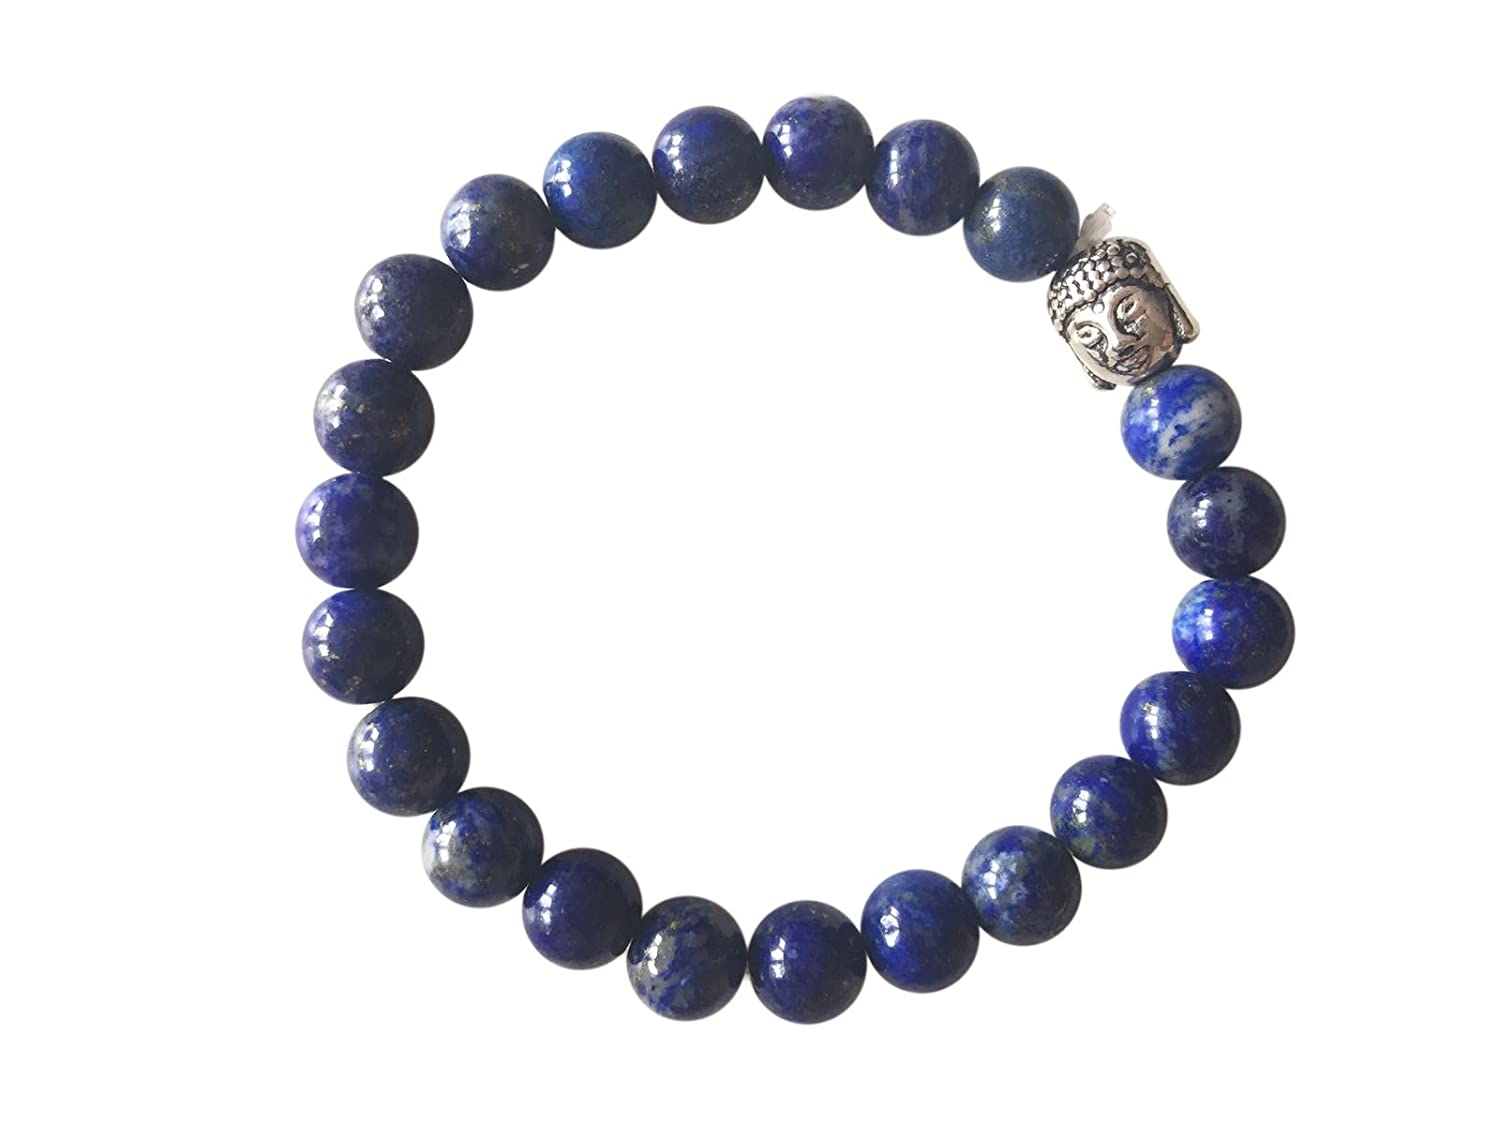 'Magic and Love' Genuine LAPIS LAZULI Gemstone Chakra Bead Buddha Bracelet ~ Natural Stones Ethically Sourced from Western Hills of India ~ Handmade Jewellery in Gift Box …